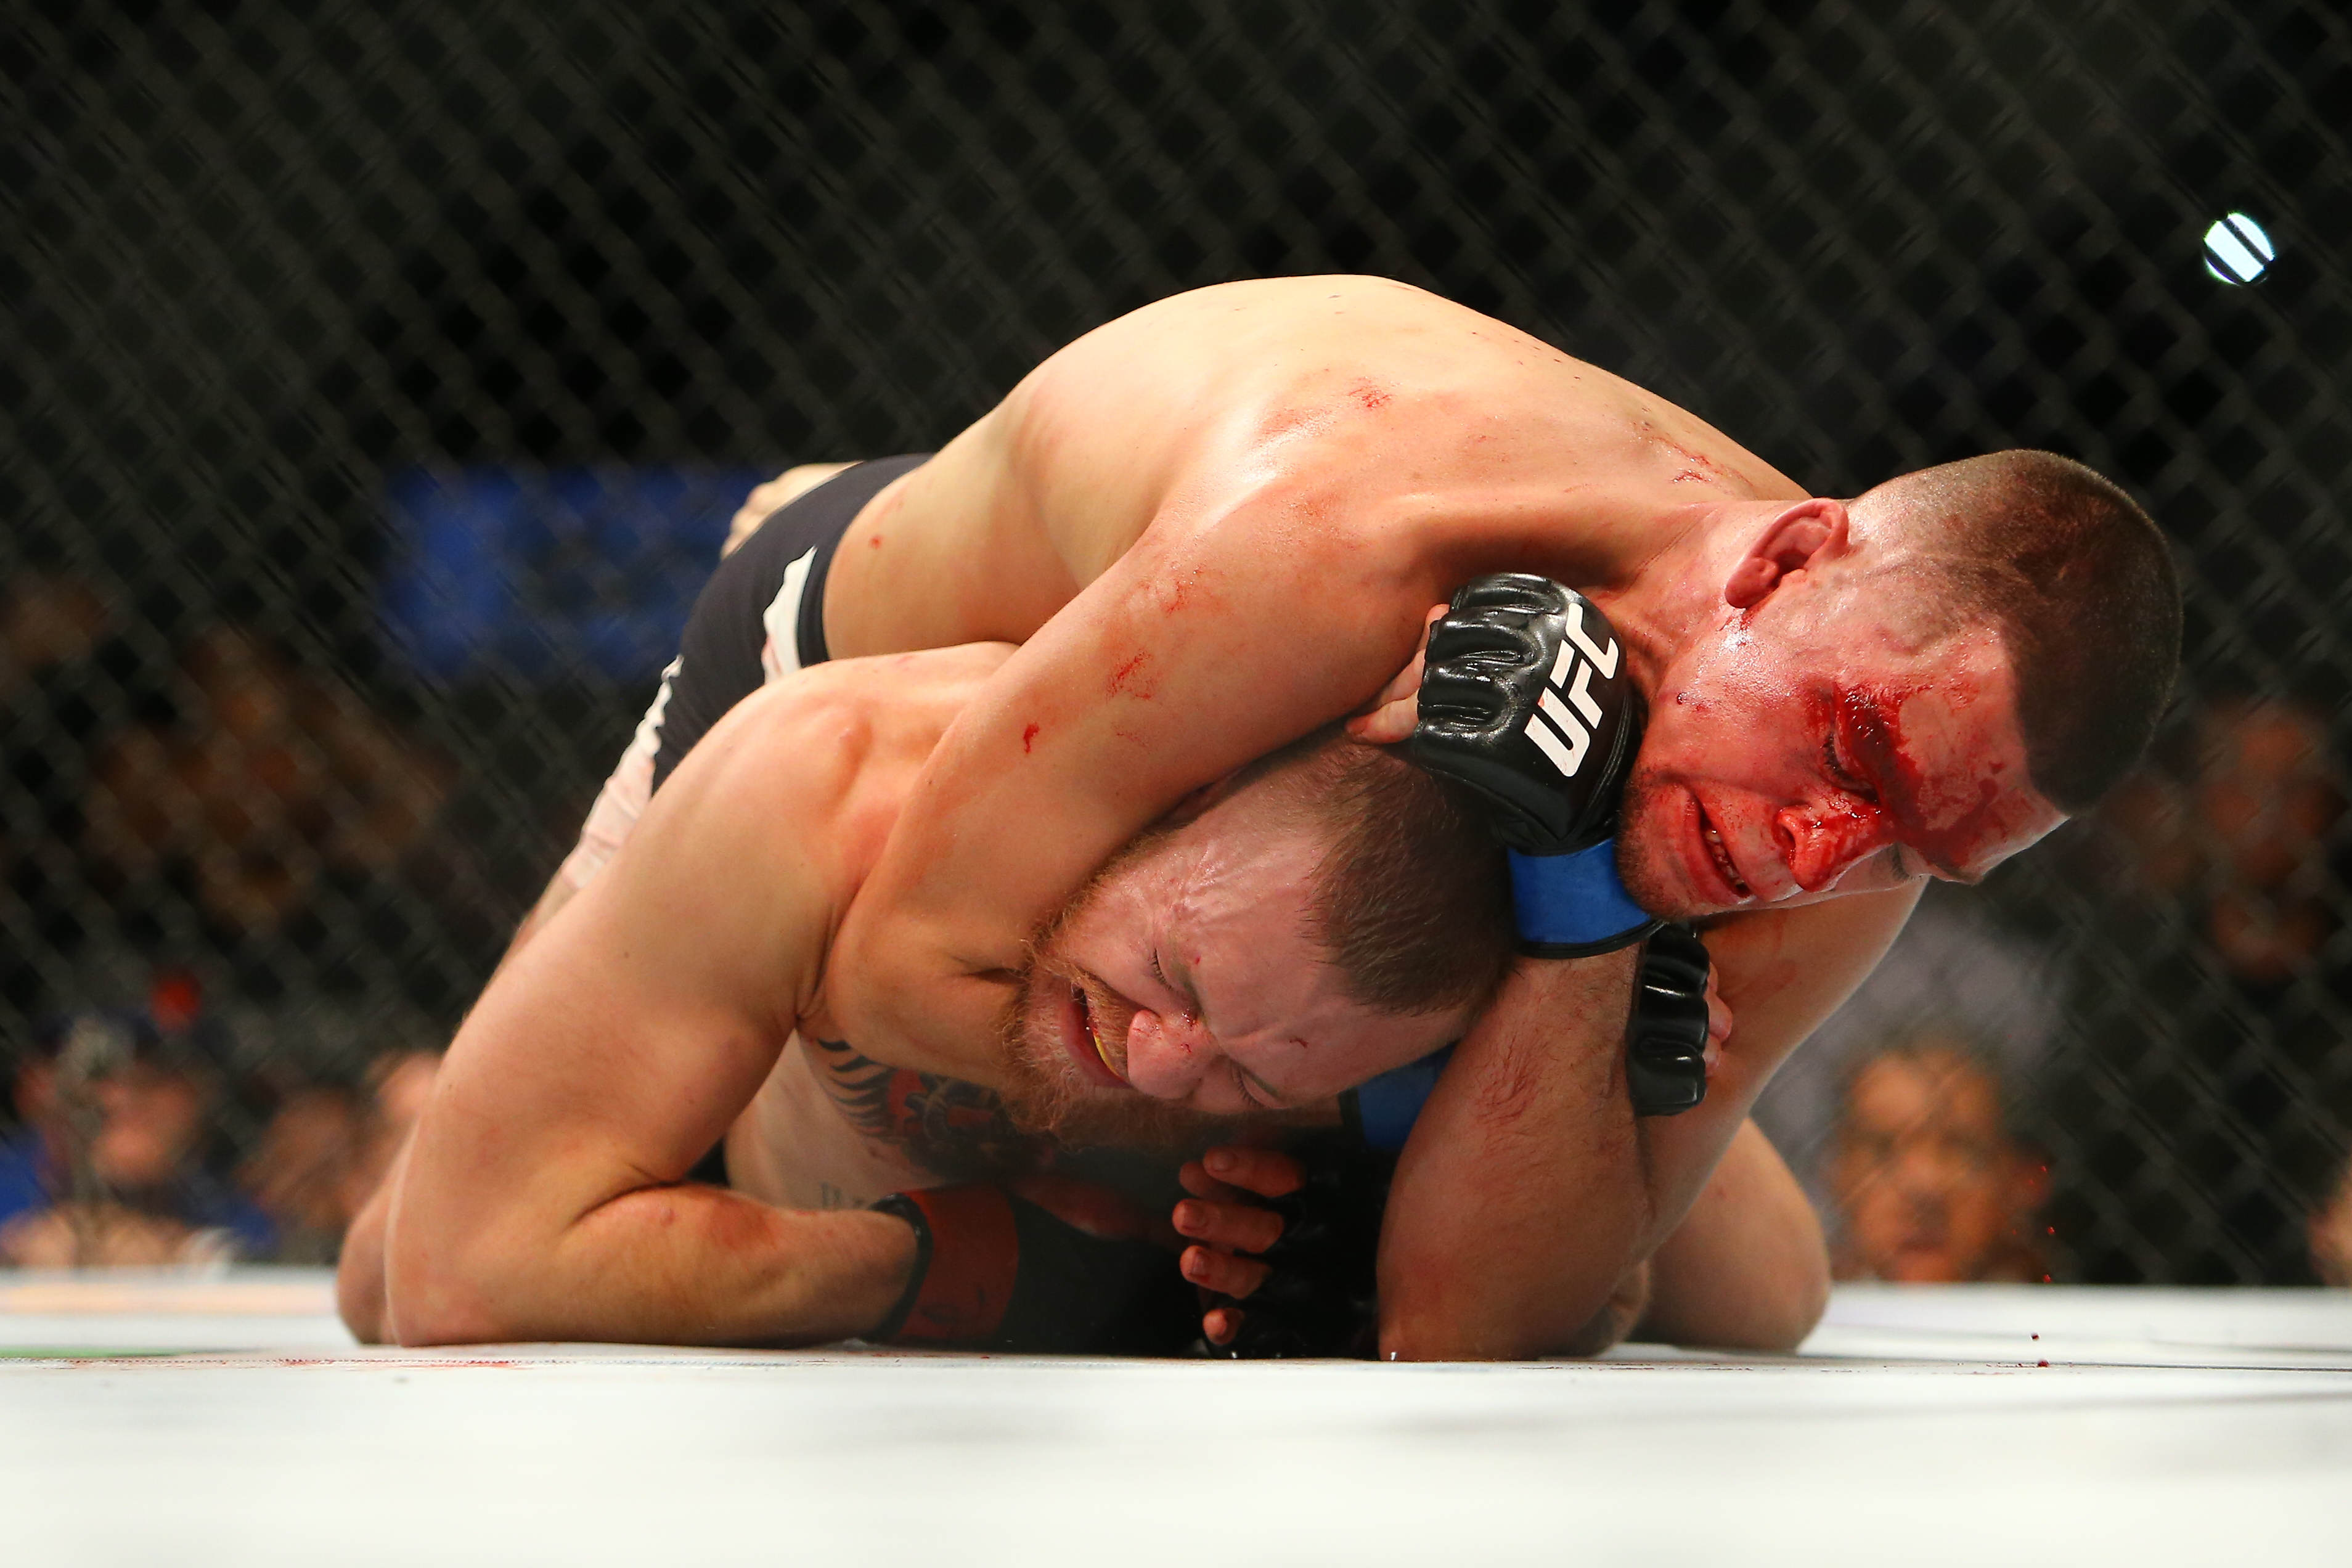 UFC 200 Headline Fight Announced, Its Going To Be A Big One GettyImages 513971532